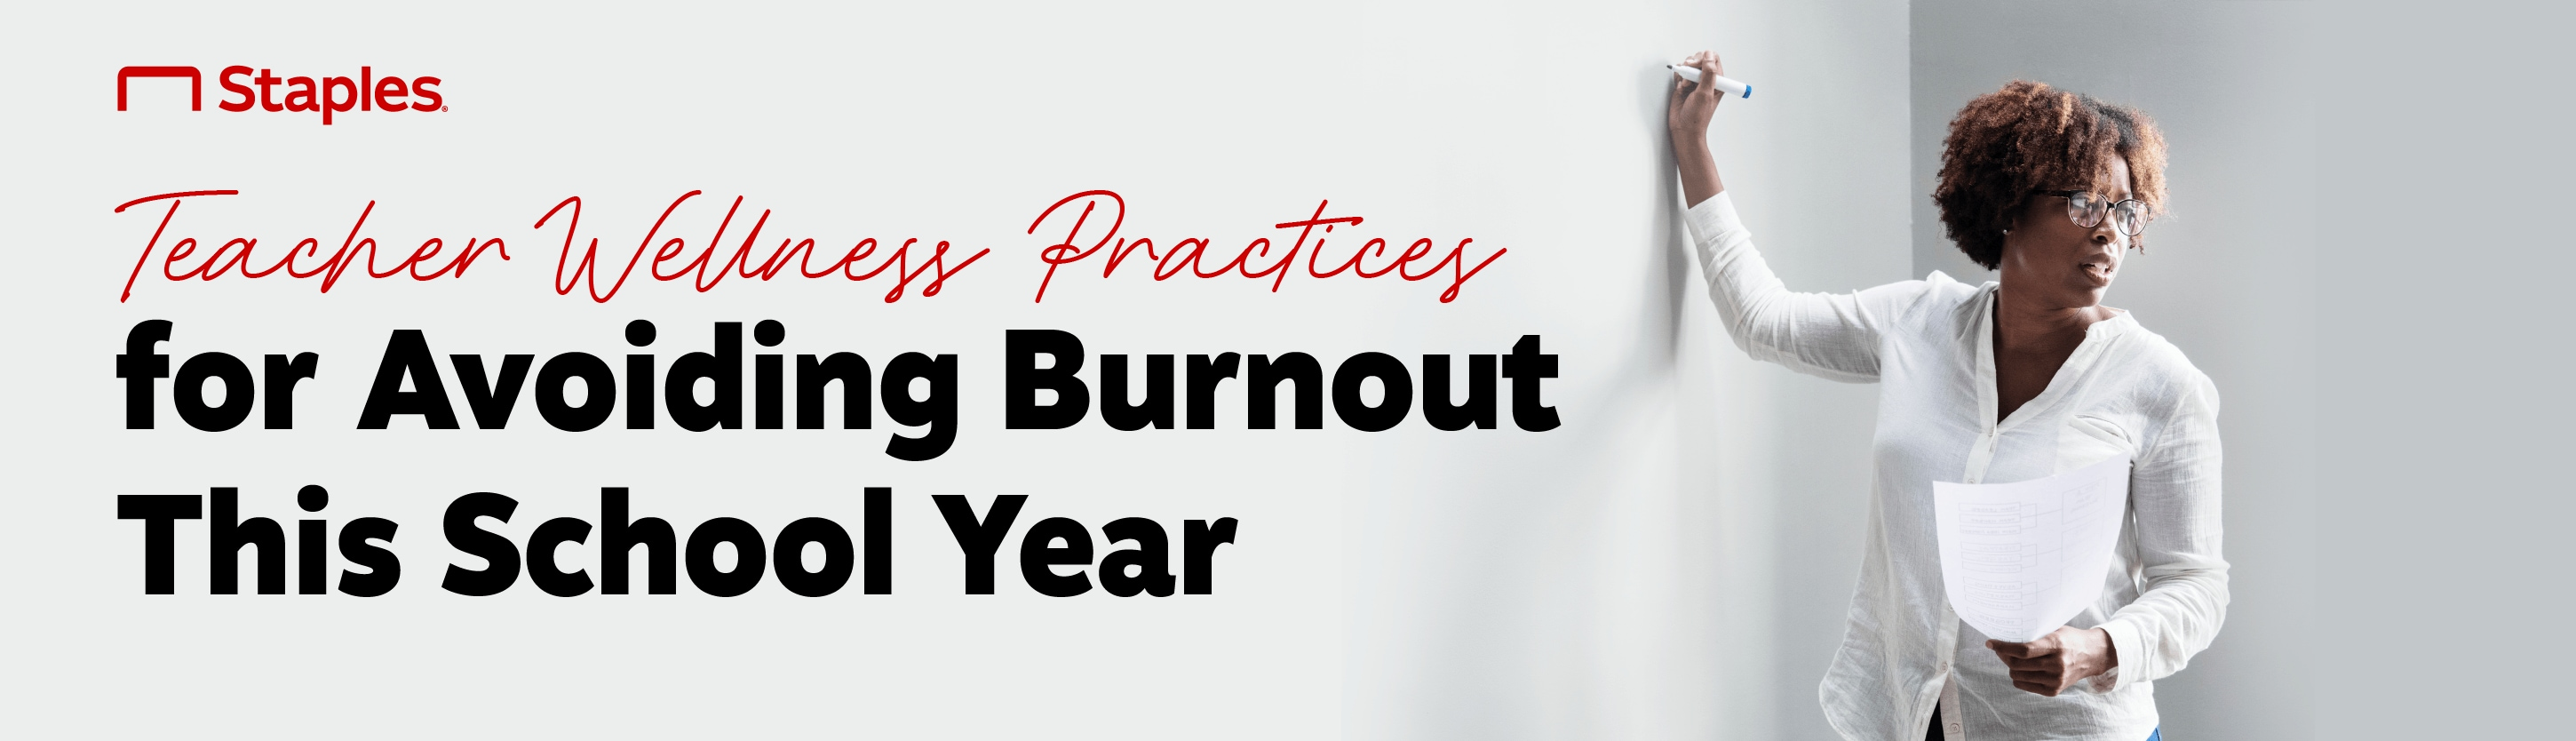 """Banner which reads: """"Teacher Wellness Practices for Avoiding Burnout this School Year"""""""